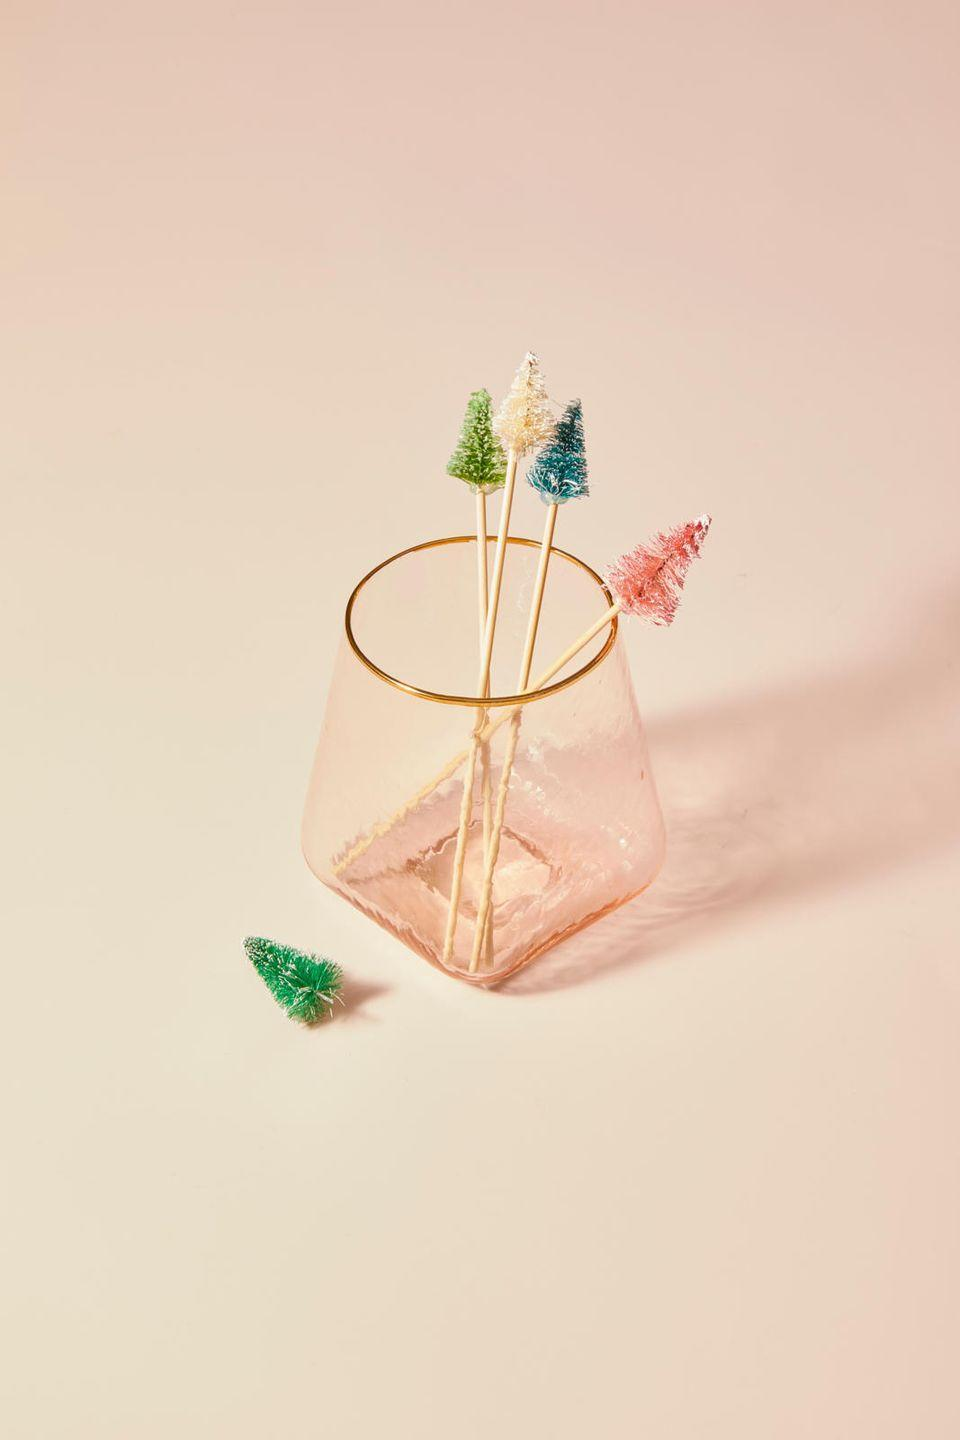 """<p>For cocktails that are extra festive, cut drink skewers down until they're about 3"""" long, then attach a <a href=""""https://www.amazon.com/Haiabei-Christmas-Crafting-Displaying-Decoration/dp/B07JLZ1SPV/?tag=syn-yahoo-20&ascsubtag=%5Bartid%7C10055.g.2996%5Bsrc%7Cyahoo-us"""" rel=""""nofollow noopener"""" target=""""_blank"""" data-ylk=""""slk:mini bottle brush tree"""" class=""""link rapid-noclick-resp"""">mini bottle brush tree</a> to the top with a dot of hot glue.</p><p><strong>RELATED: </strong><a href=""""https://www.goodhousekeeping.com/holidays/christmas-ideas/g29327296/bottle-brush-christmas-tree-online/"""" rel=""""nofollow noopener"""" target=""""_blank"""" data-ylk=""""slk:Where to Buy Bottle Brush Christmas Trees Online"""" class=""""link rapid-noclick-resp"""">Where to Buy Bottle Brush Christmas Trees Online</a></p>"""